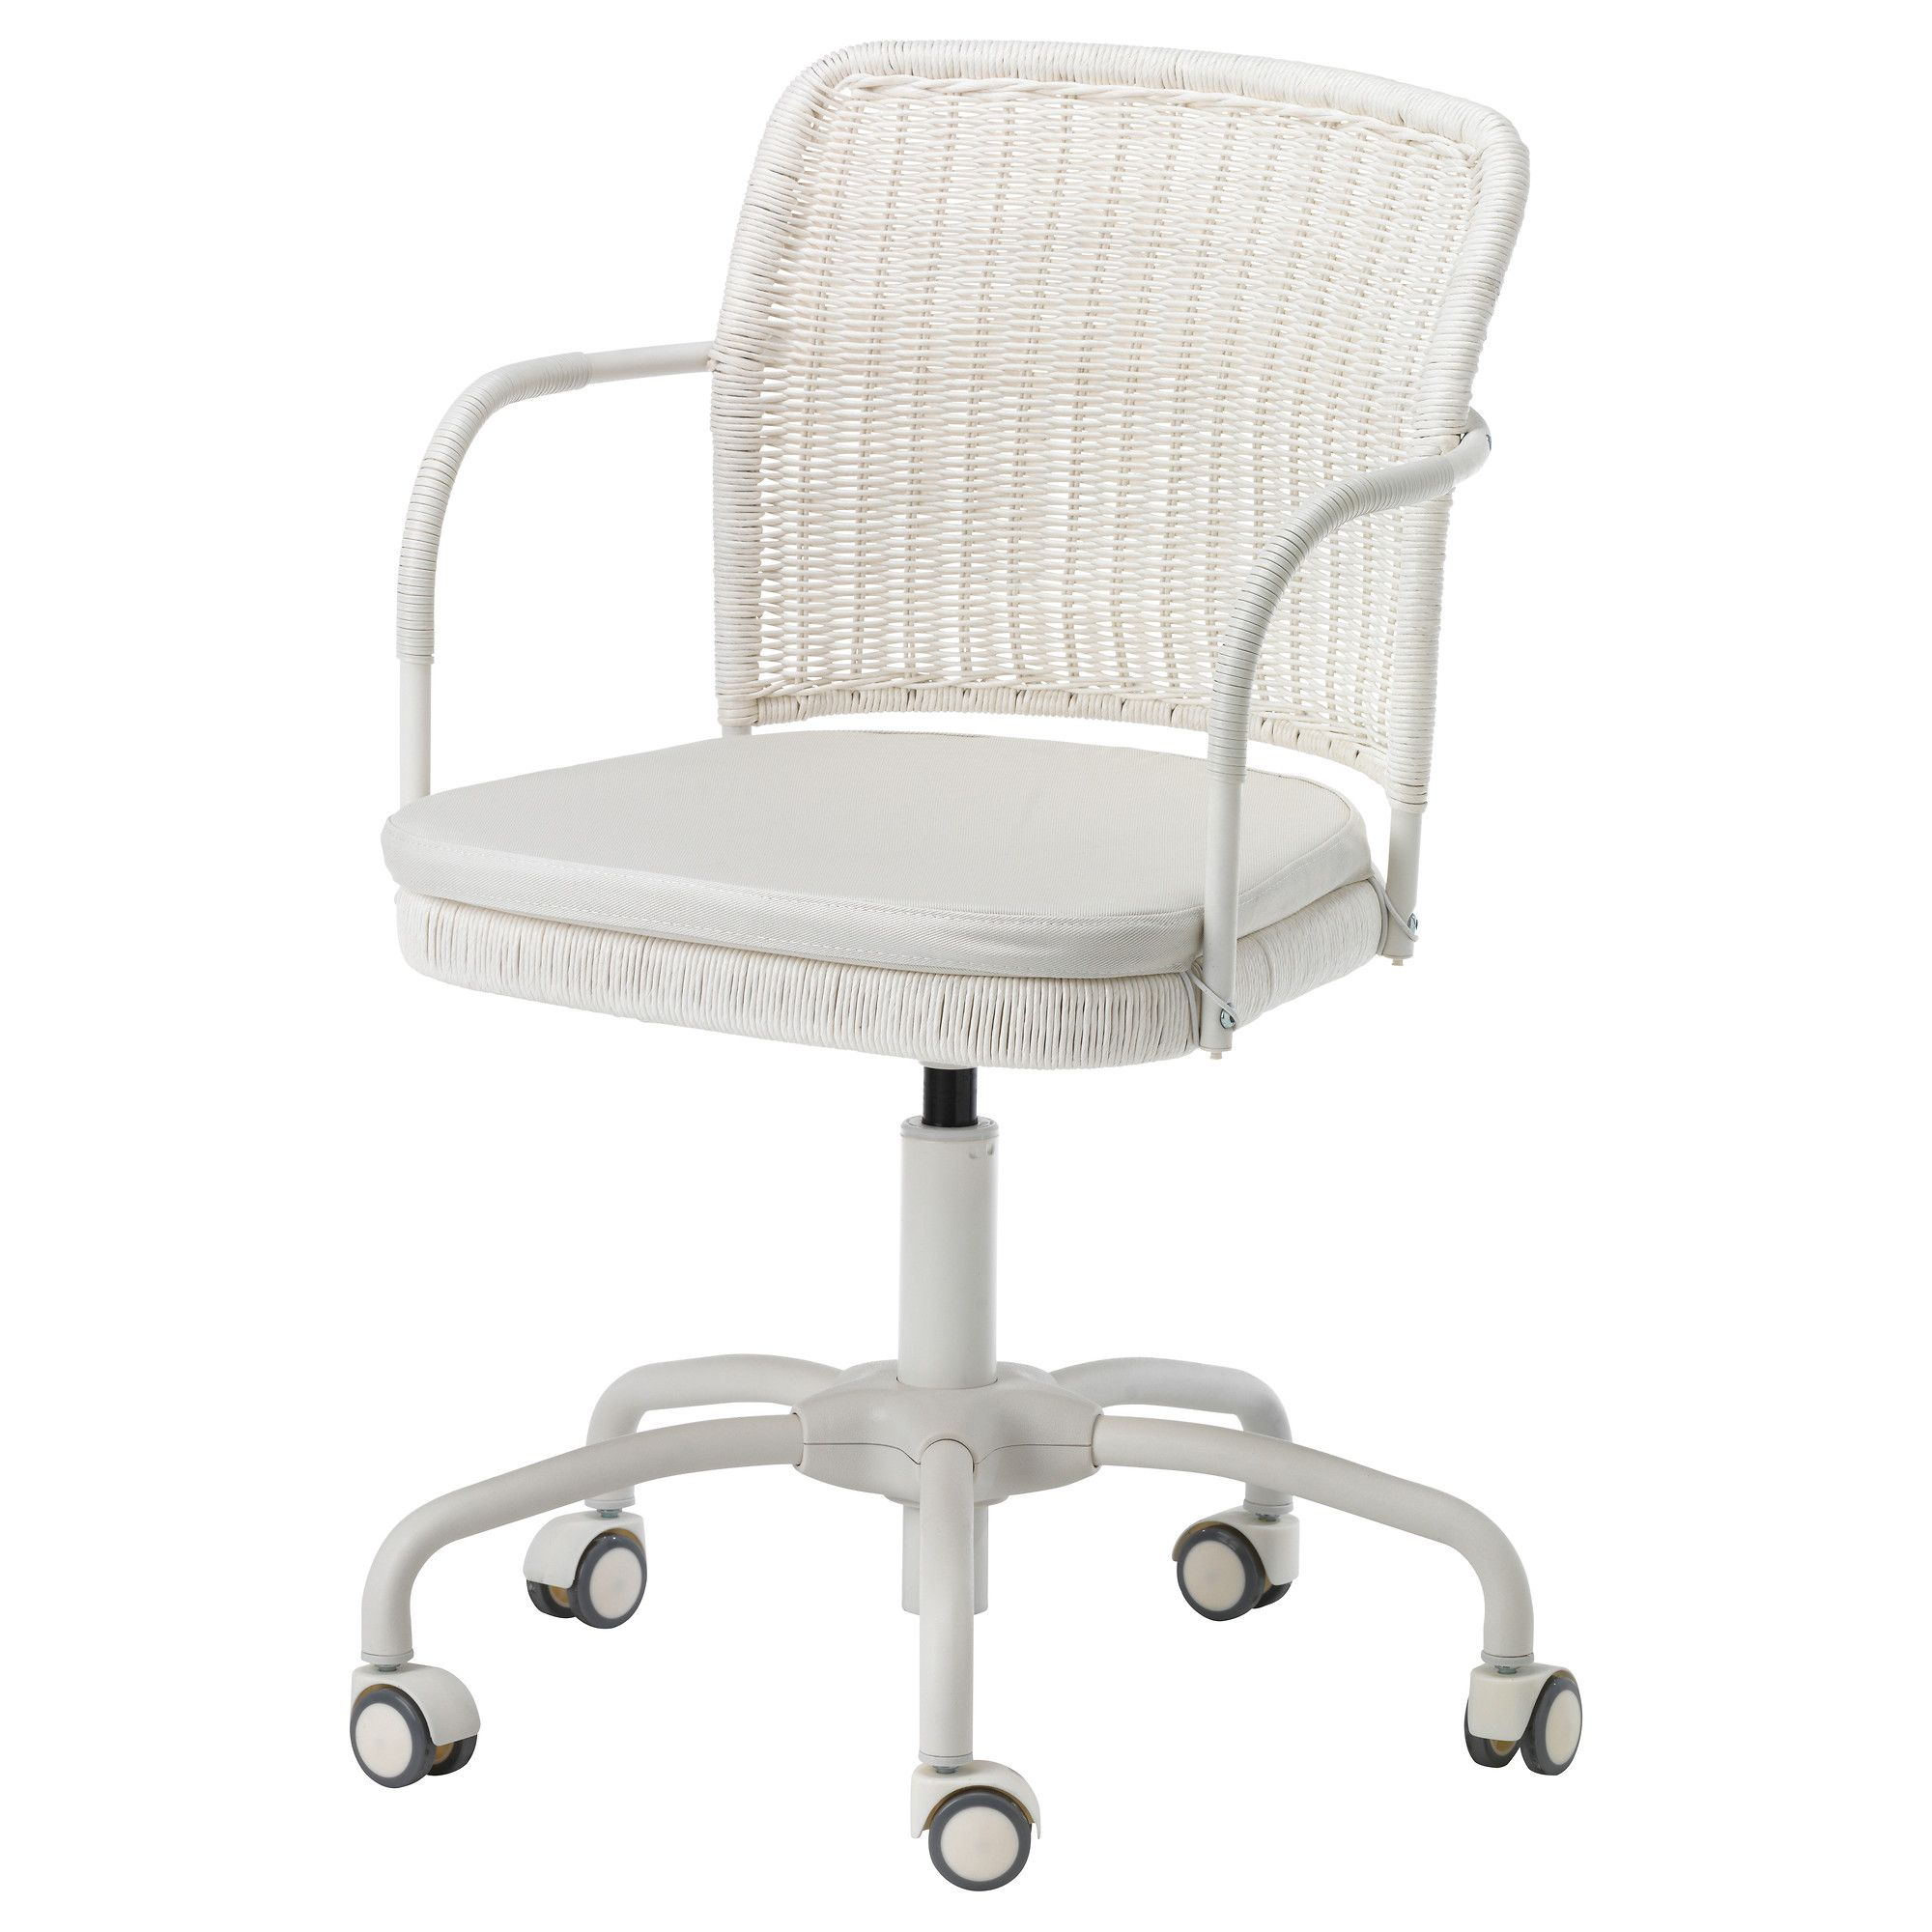 Ikea Snille Swivel Chair White White Desk Chair Ikea Chair